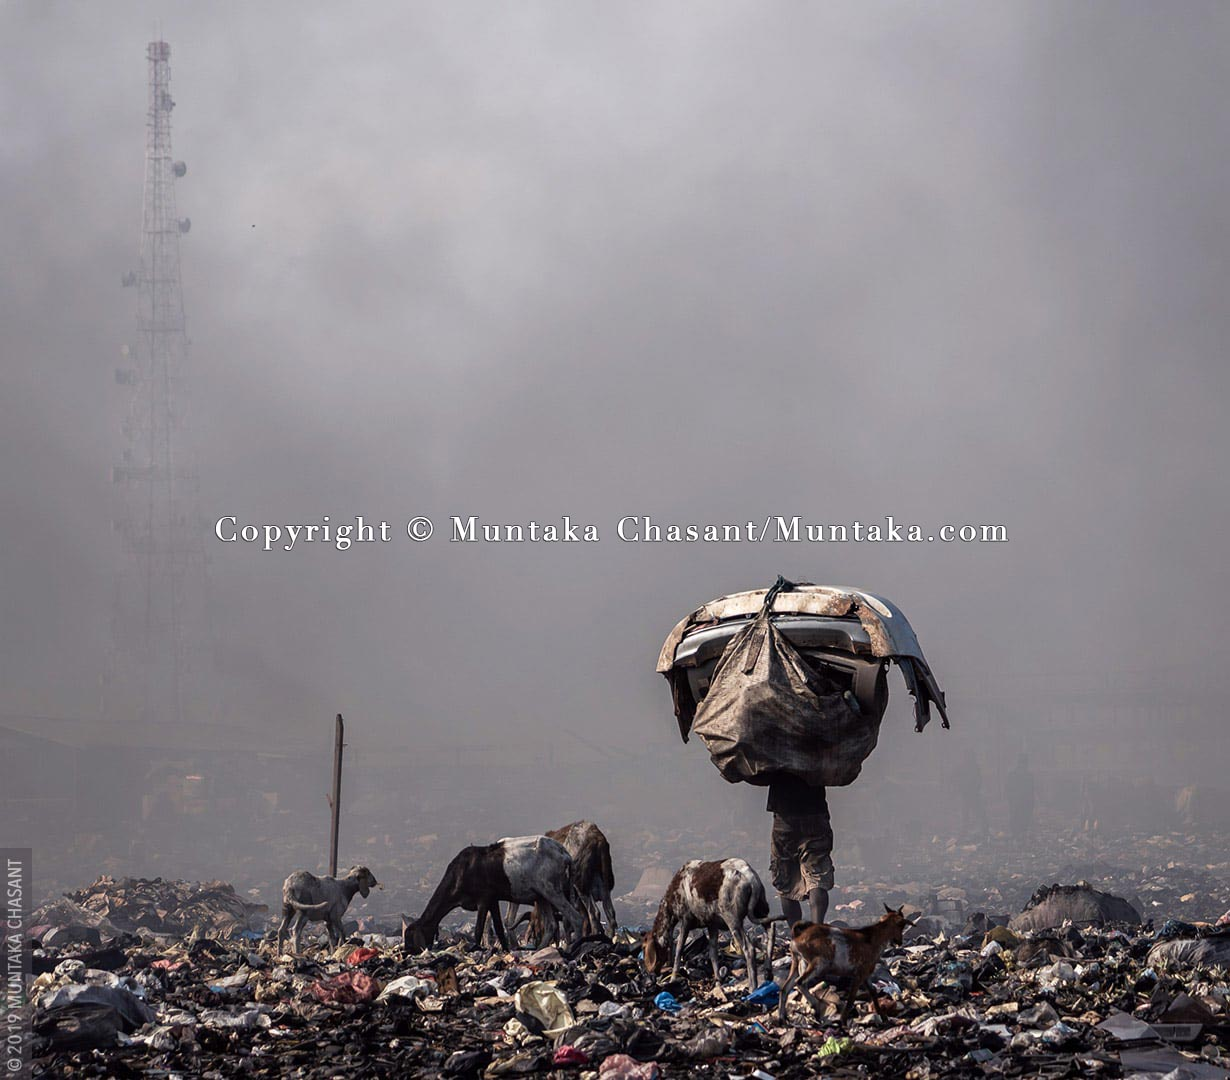 Man walks through a wall of smoke caused by the burning of waste cables while carrying auto body parts on his head on the Agbogbloshie e-waste dump in Agbogbloshie, Ghana. Sheep and goats can also be seen foraging. Their meat ends up in Ghana's food chain, and researchers fear they may be contaminated. © 2019 Muntaka Chasant